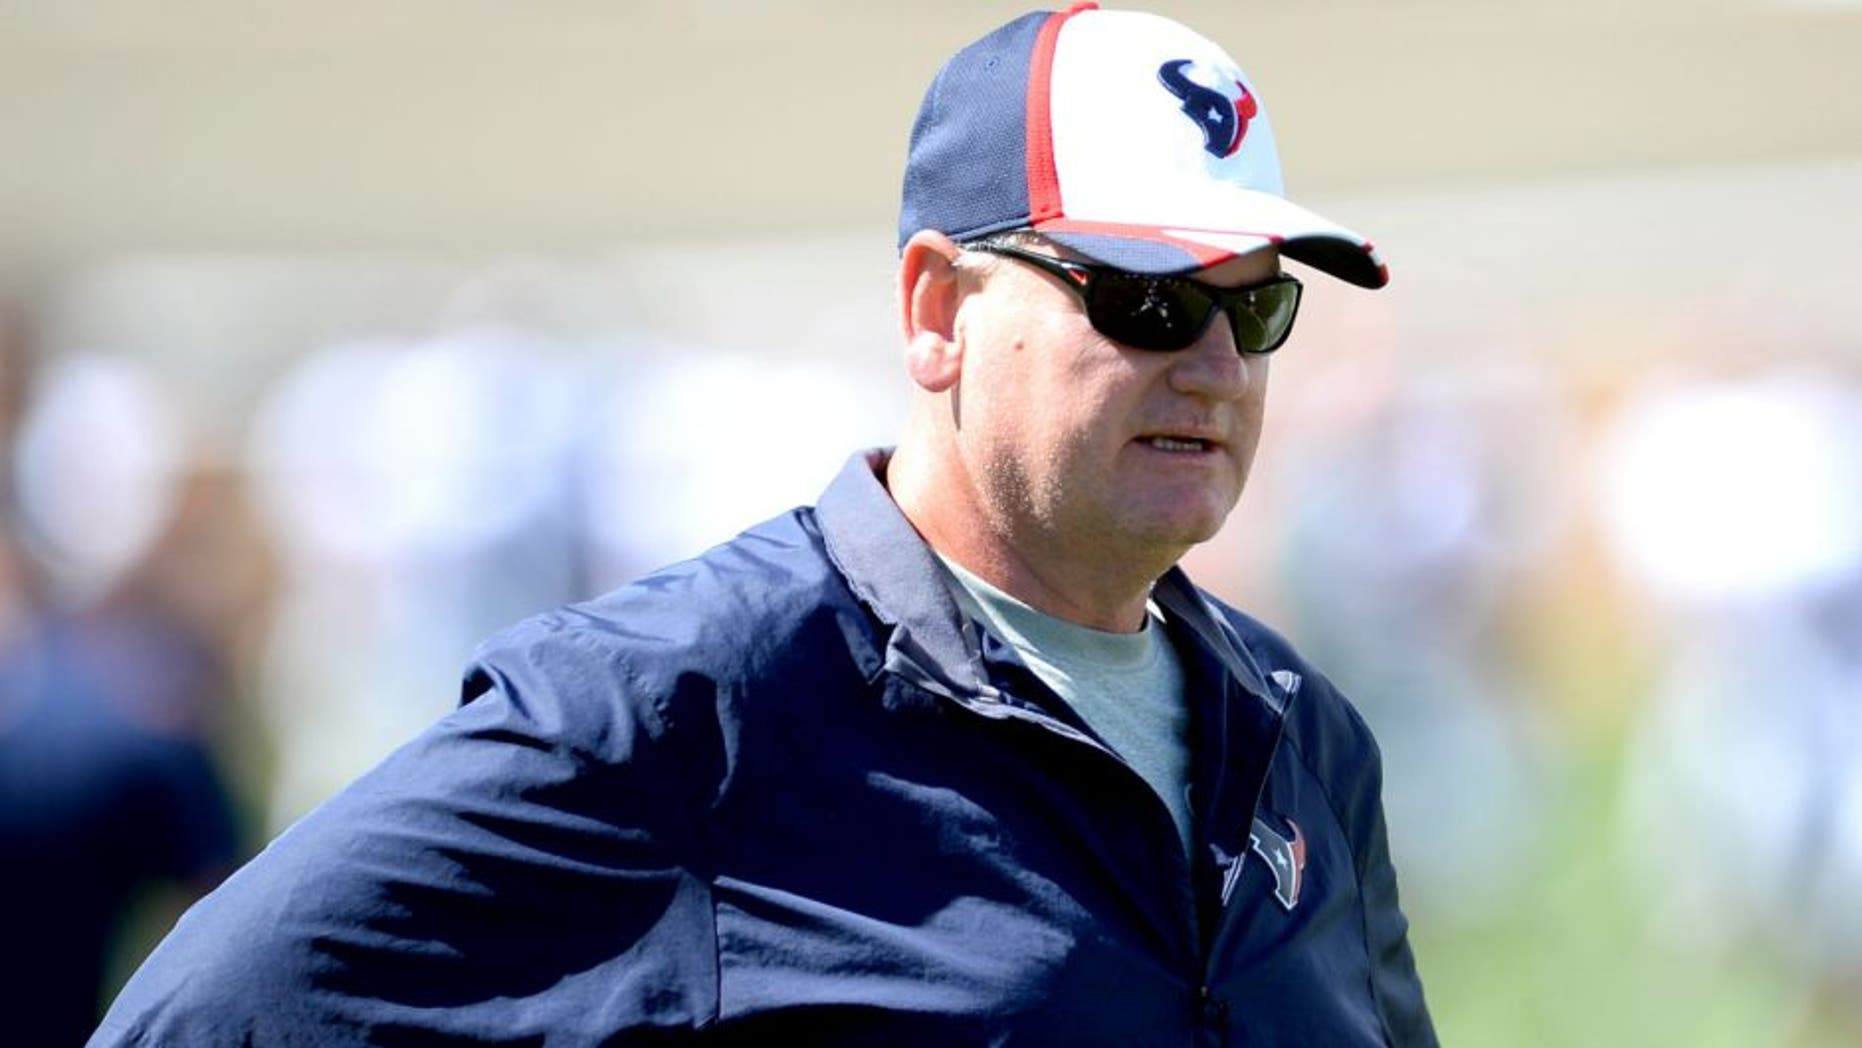 Aug 20, 2014; Englewood, CO, USA; Houston Texans offensive line coach Paul Dunn before the start of a scrimmage against the Denver Broncos at the Broncos training facility. Mandatory Credit: Ron Chenoy-USA TODAY Sports